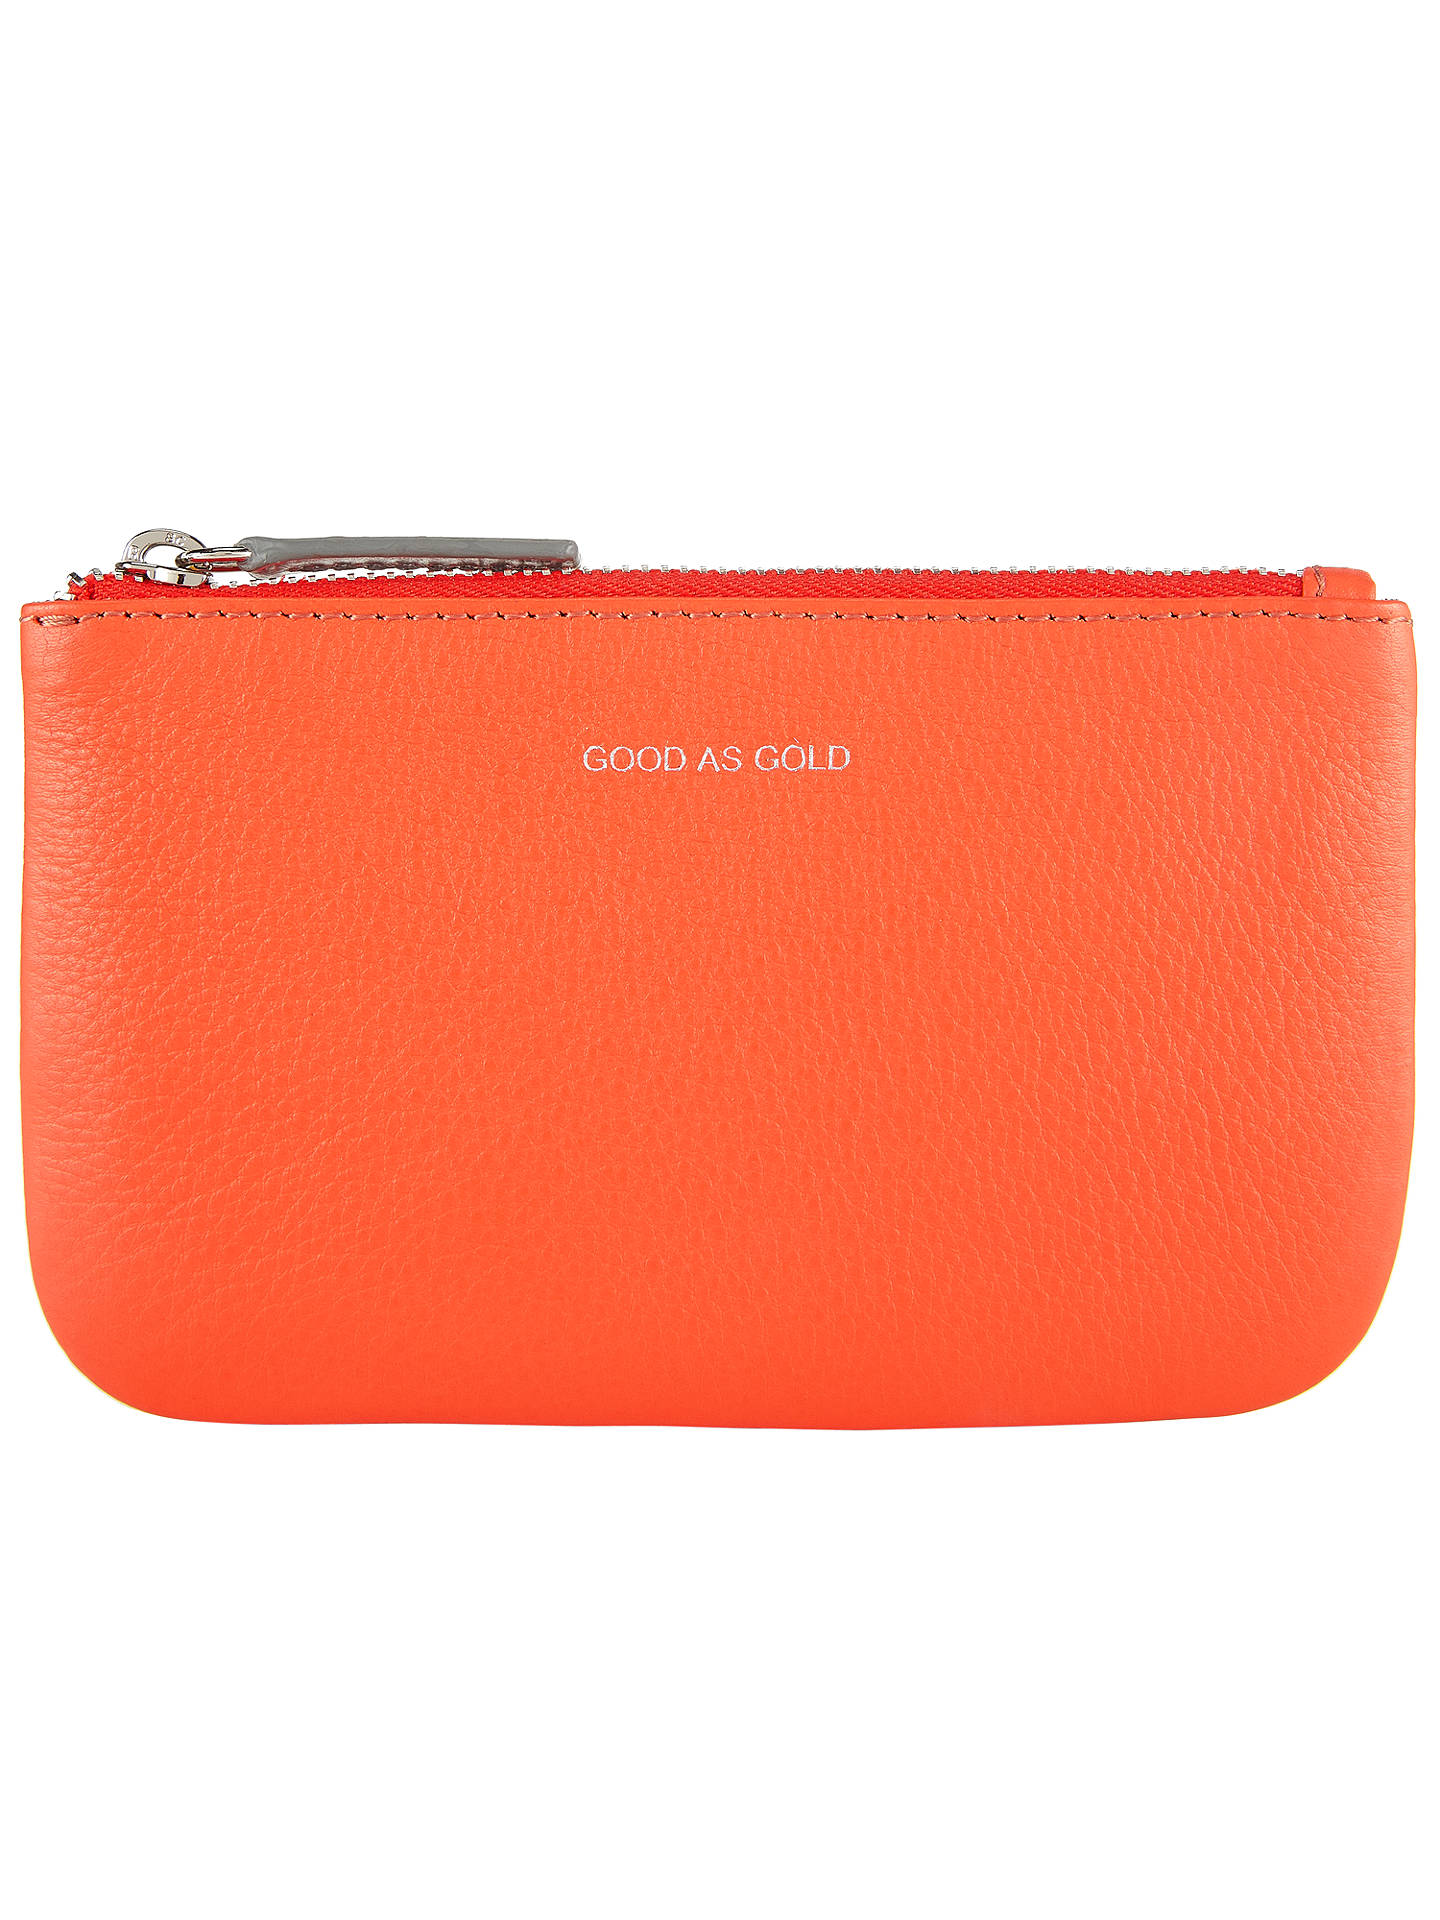 BuyCollection WEEKEND by John Lewis Hayley 'Good As Gold' Slogan Leather Coin Purse, Orange Online at johnlewis.com